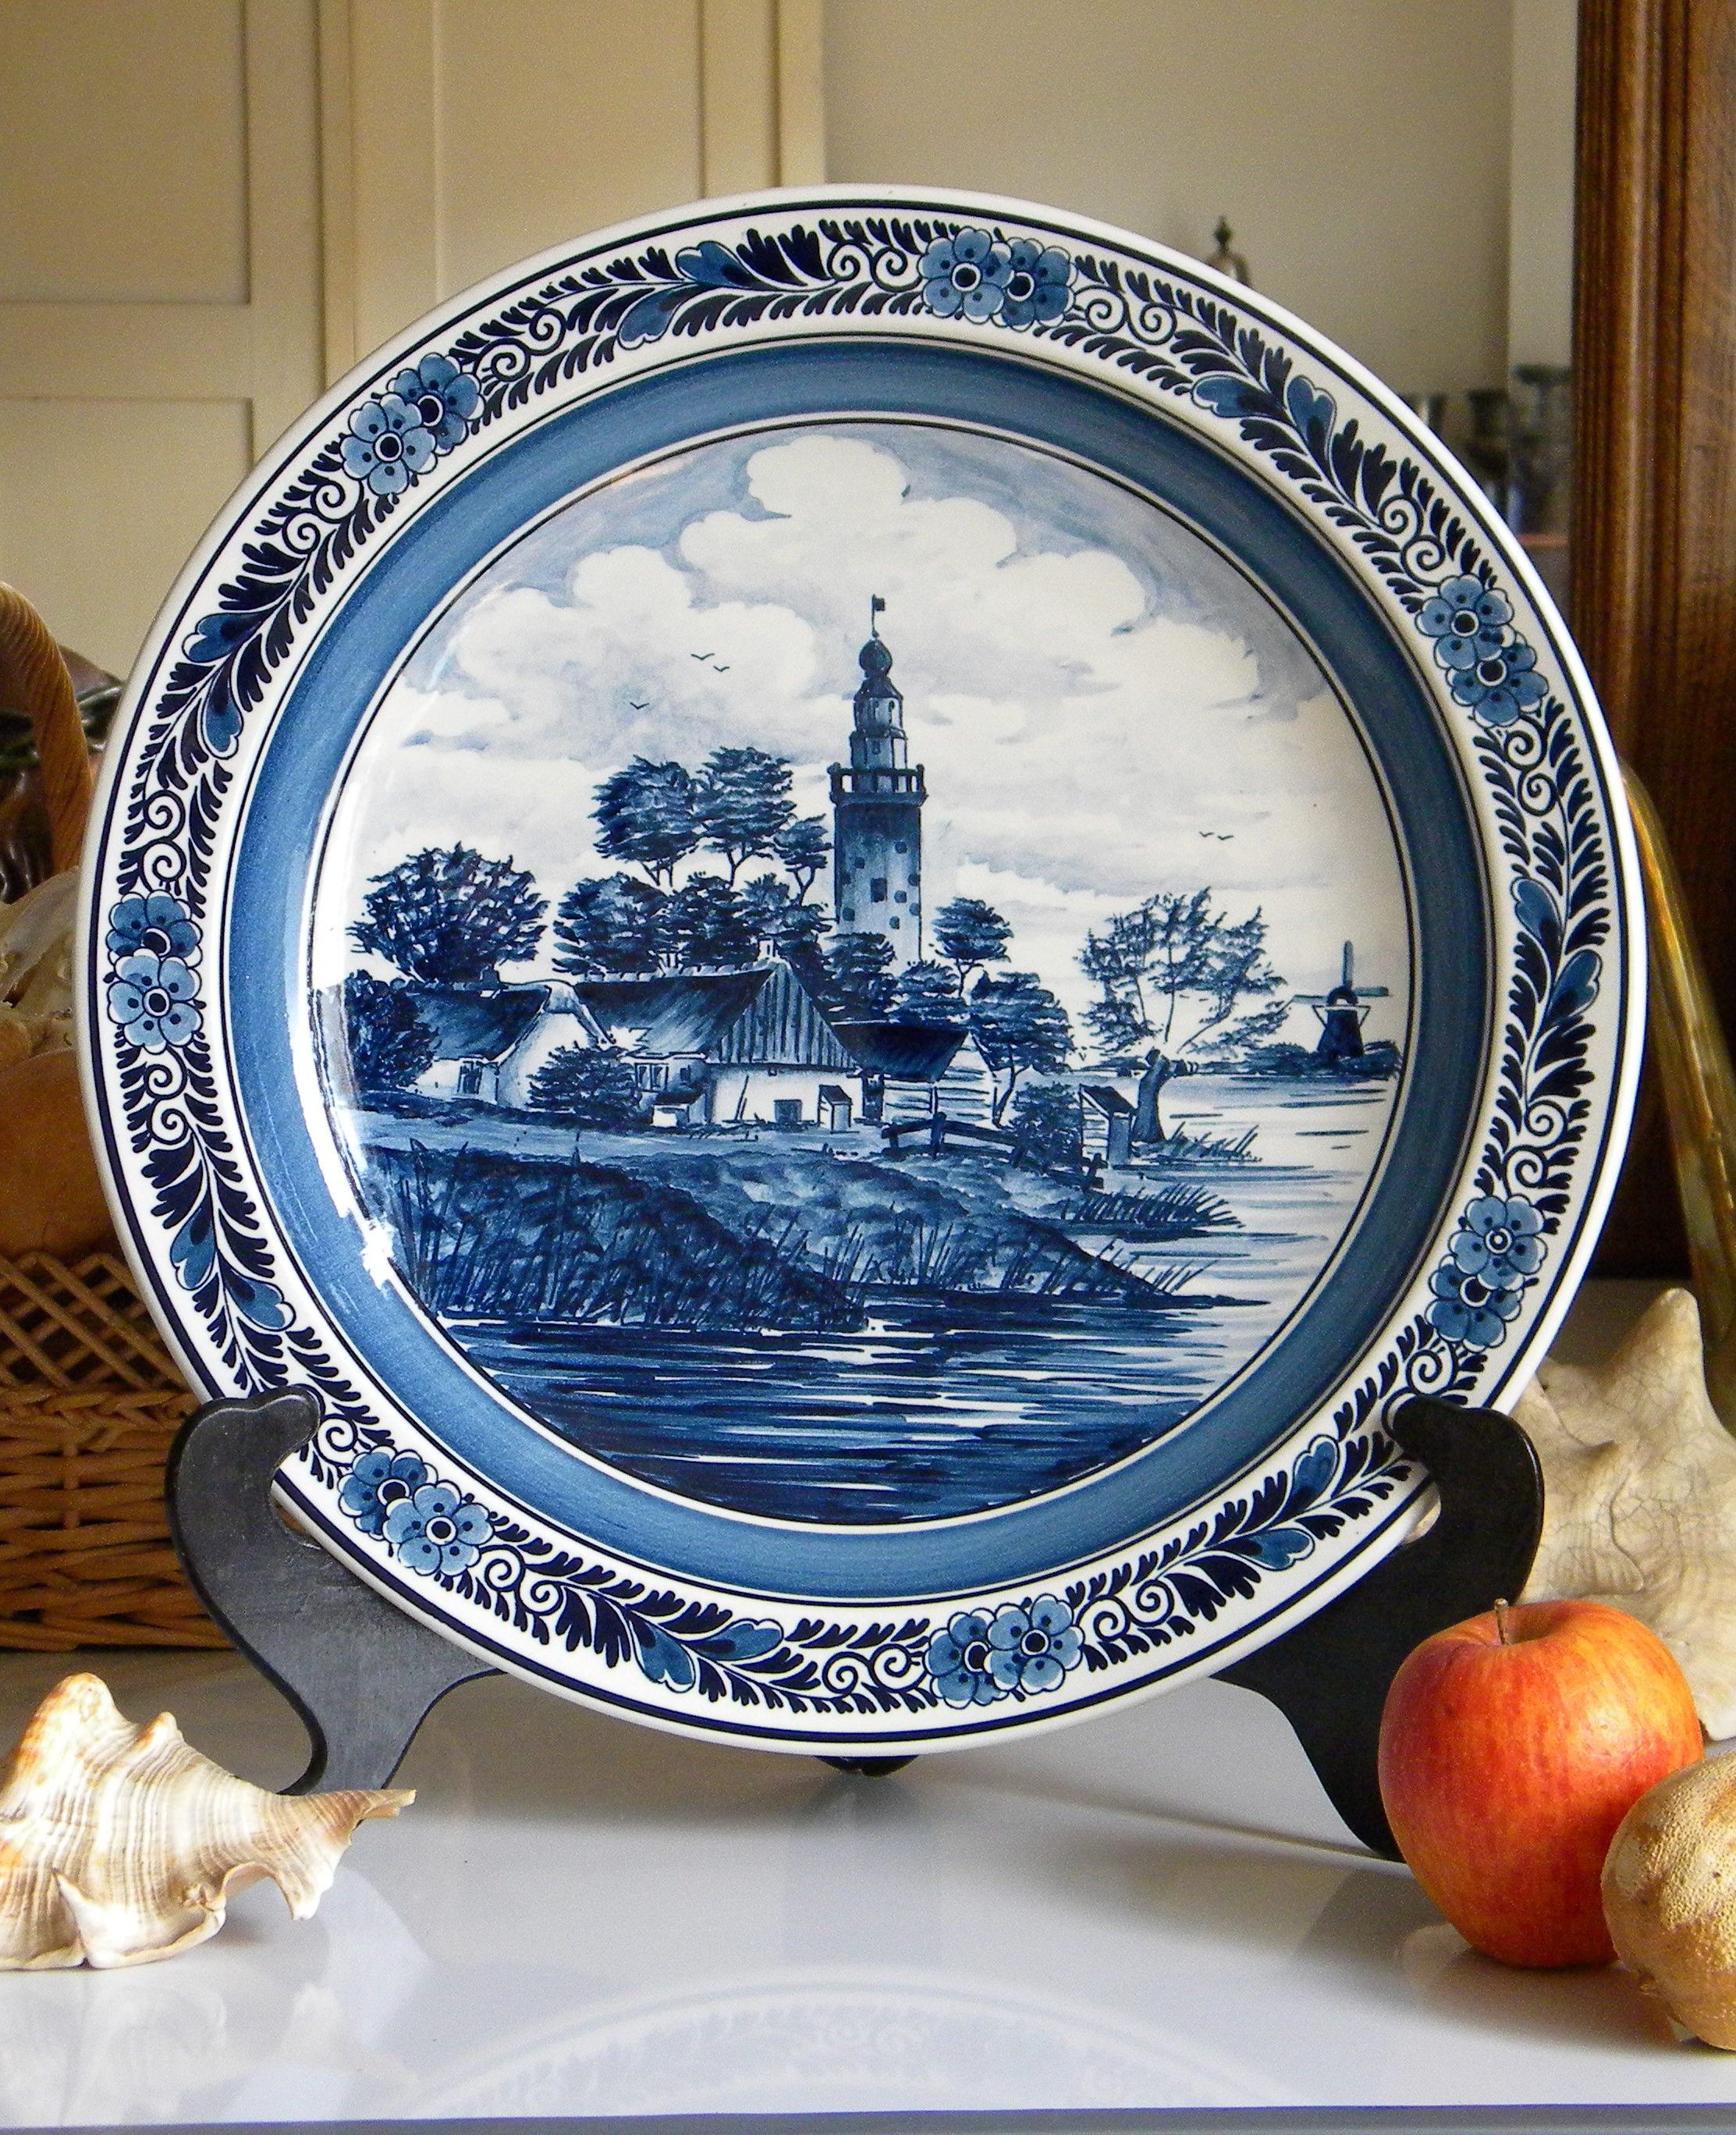 Blue And White Decorative Wall Plates Stunning Large Delft Blue Royal Goedewaagen Gouda Holland Vintage Decorating Inspiration